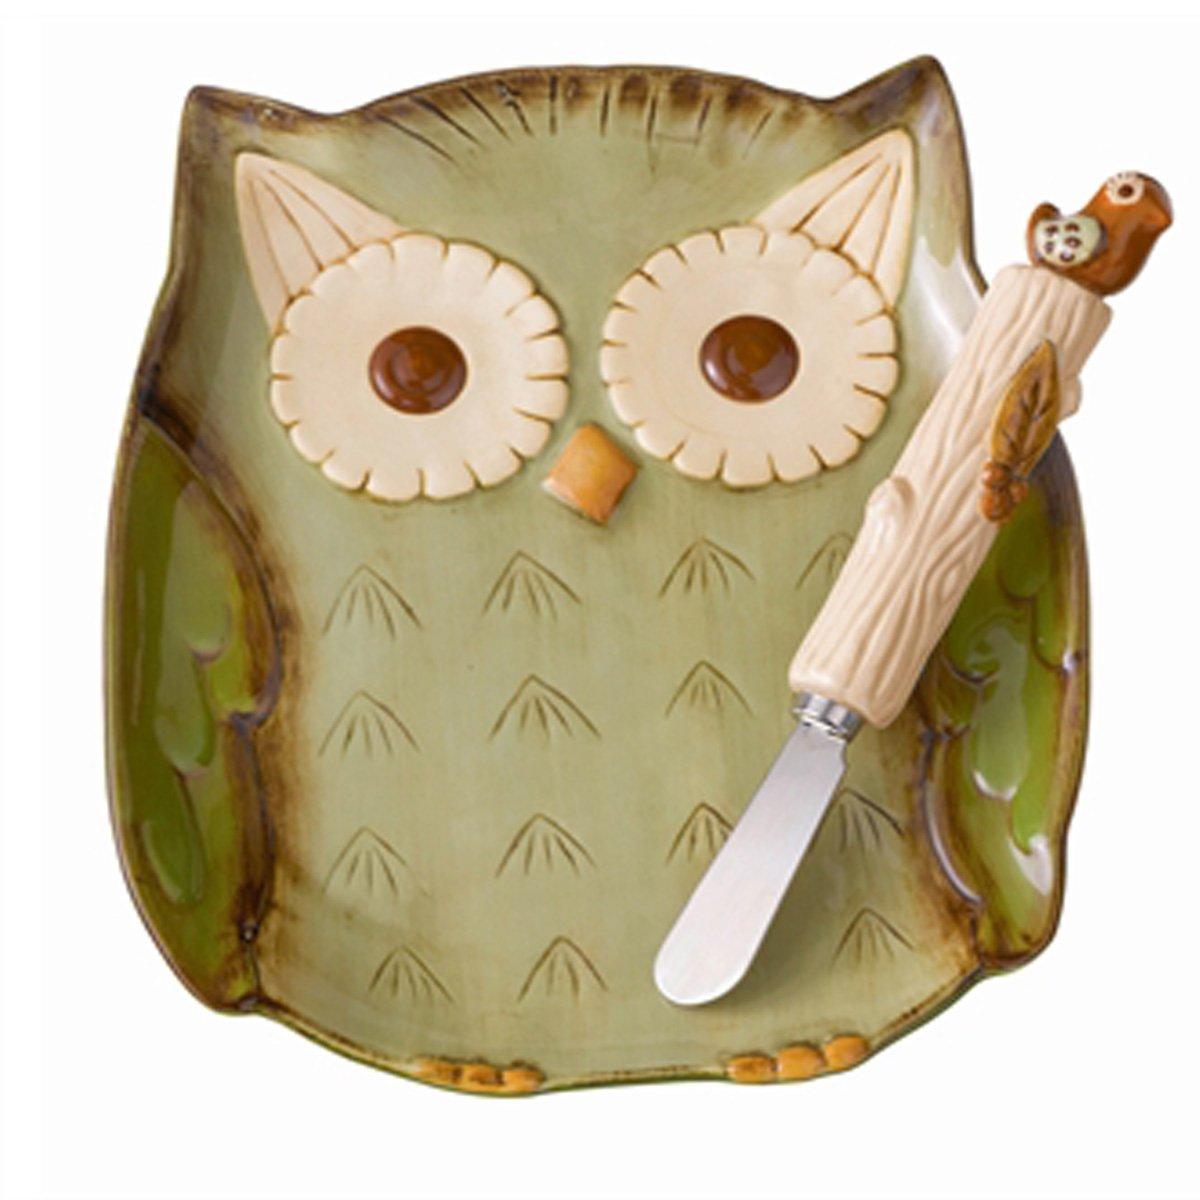 Grasslands Road Crimson Hollow Owl Plate and Bird Spreader